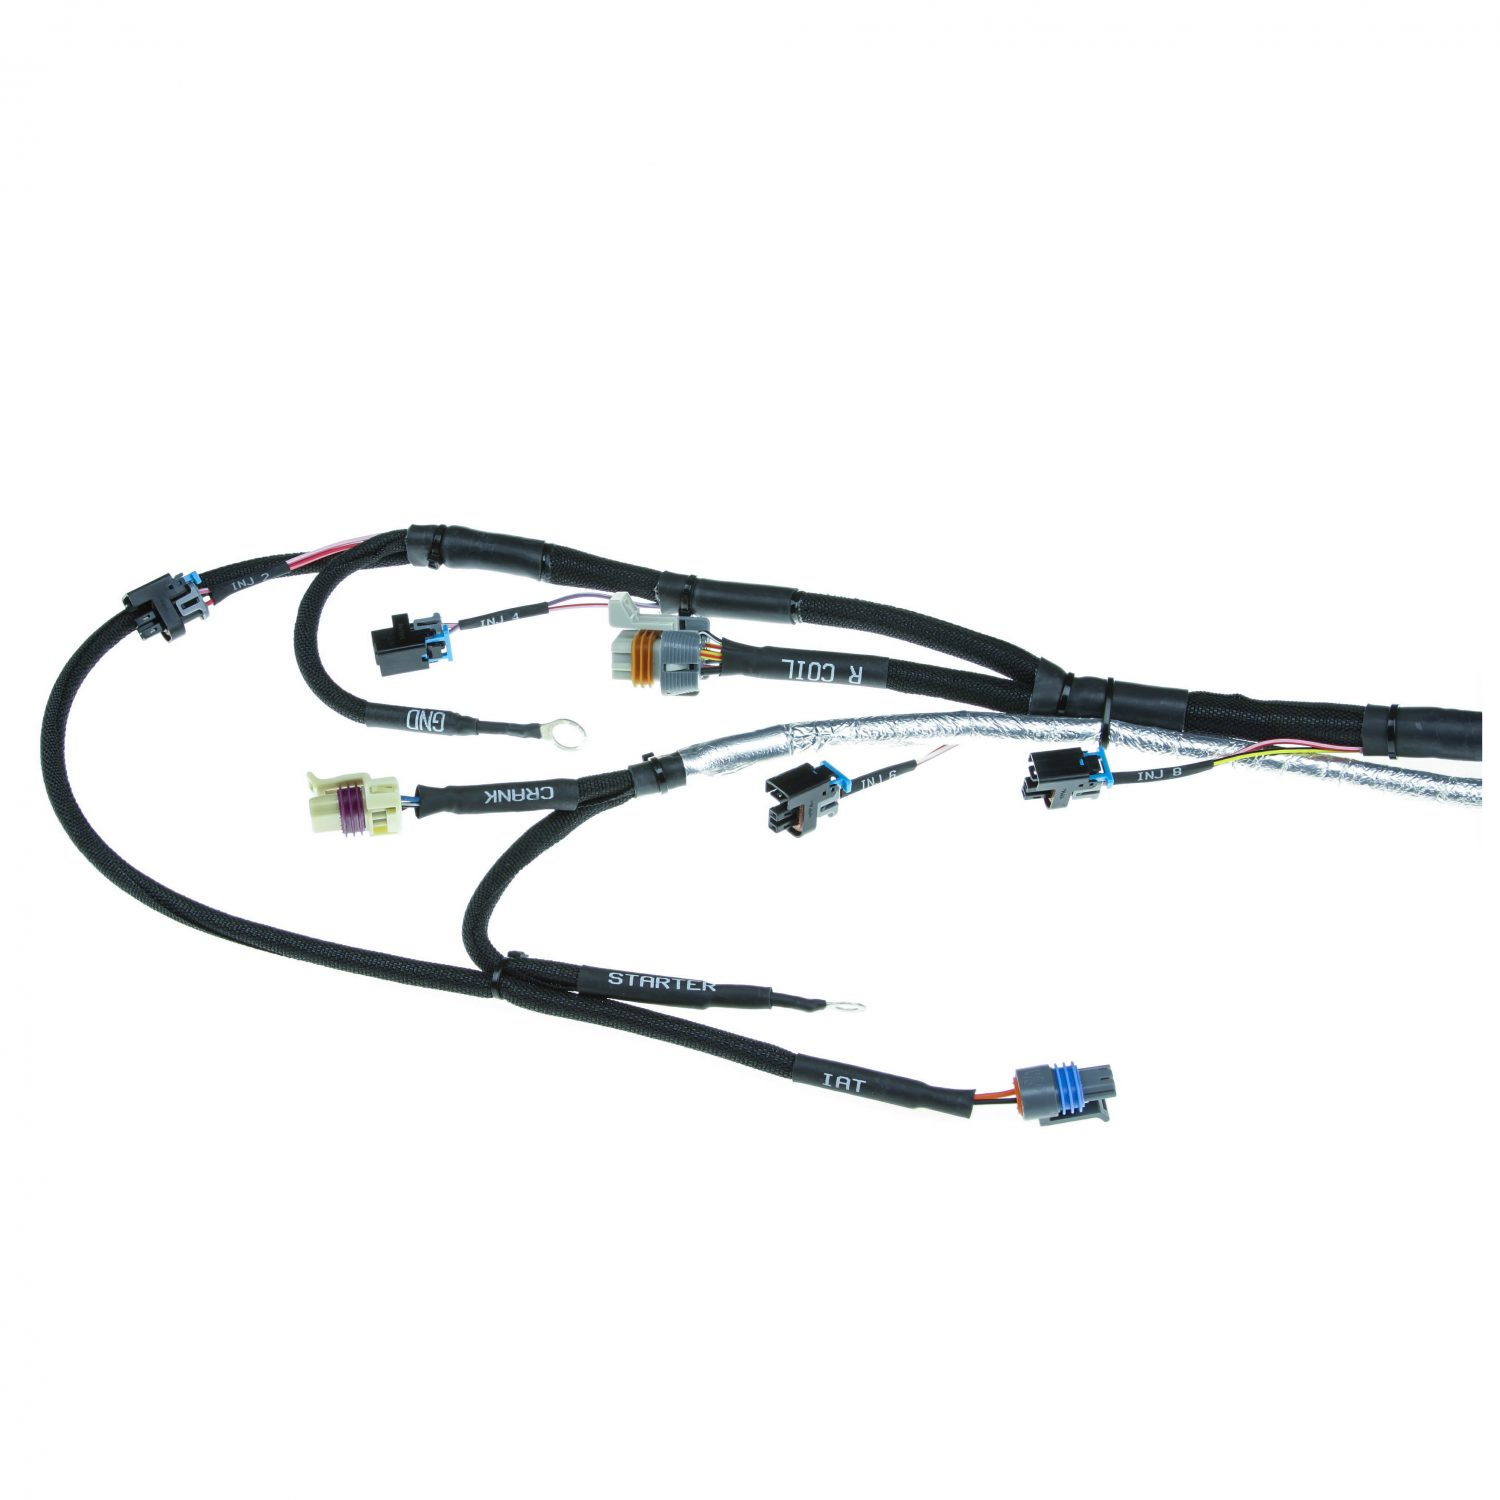 Ms3 Gm Ls 58x Plug And Play Engine Harness 1st Gen Car Wiring Fabrication